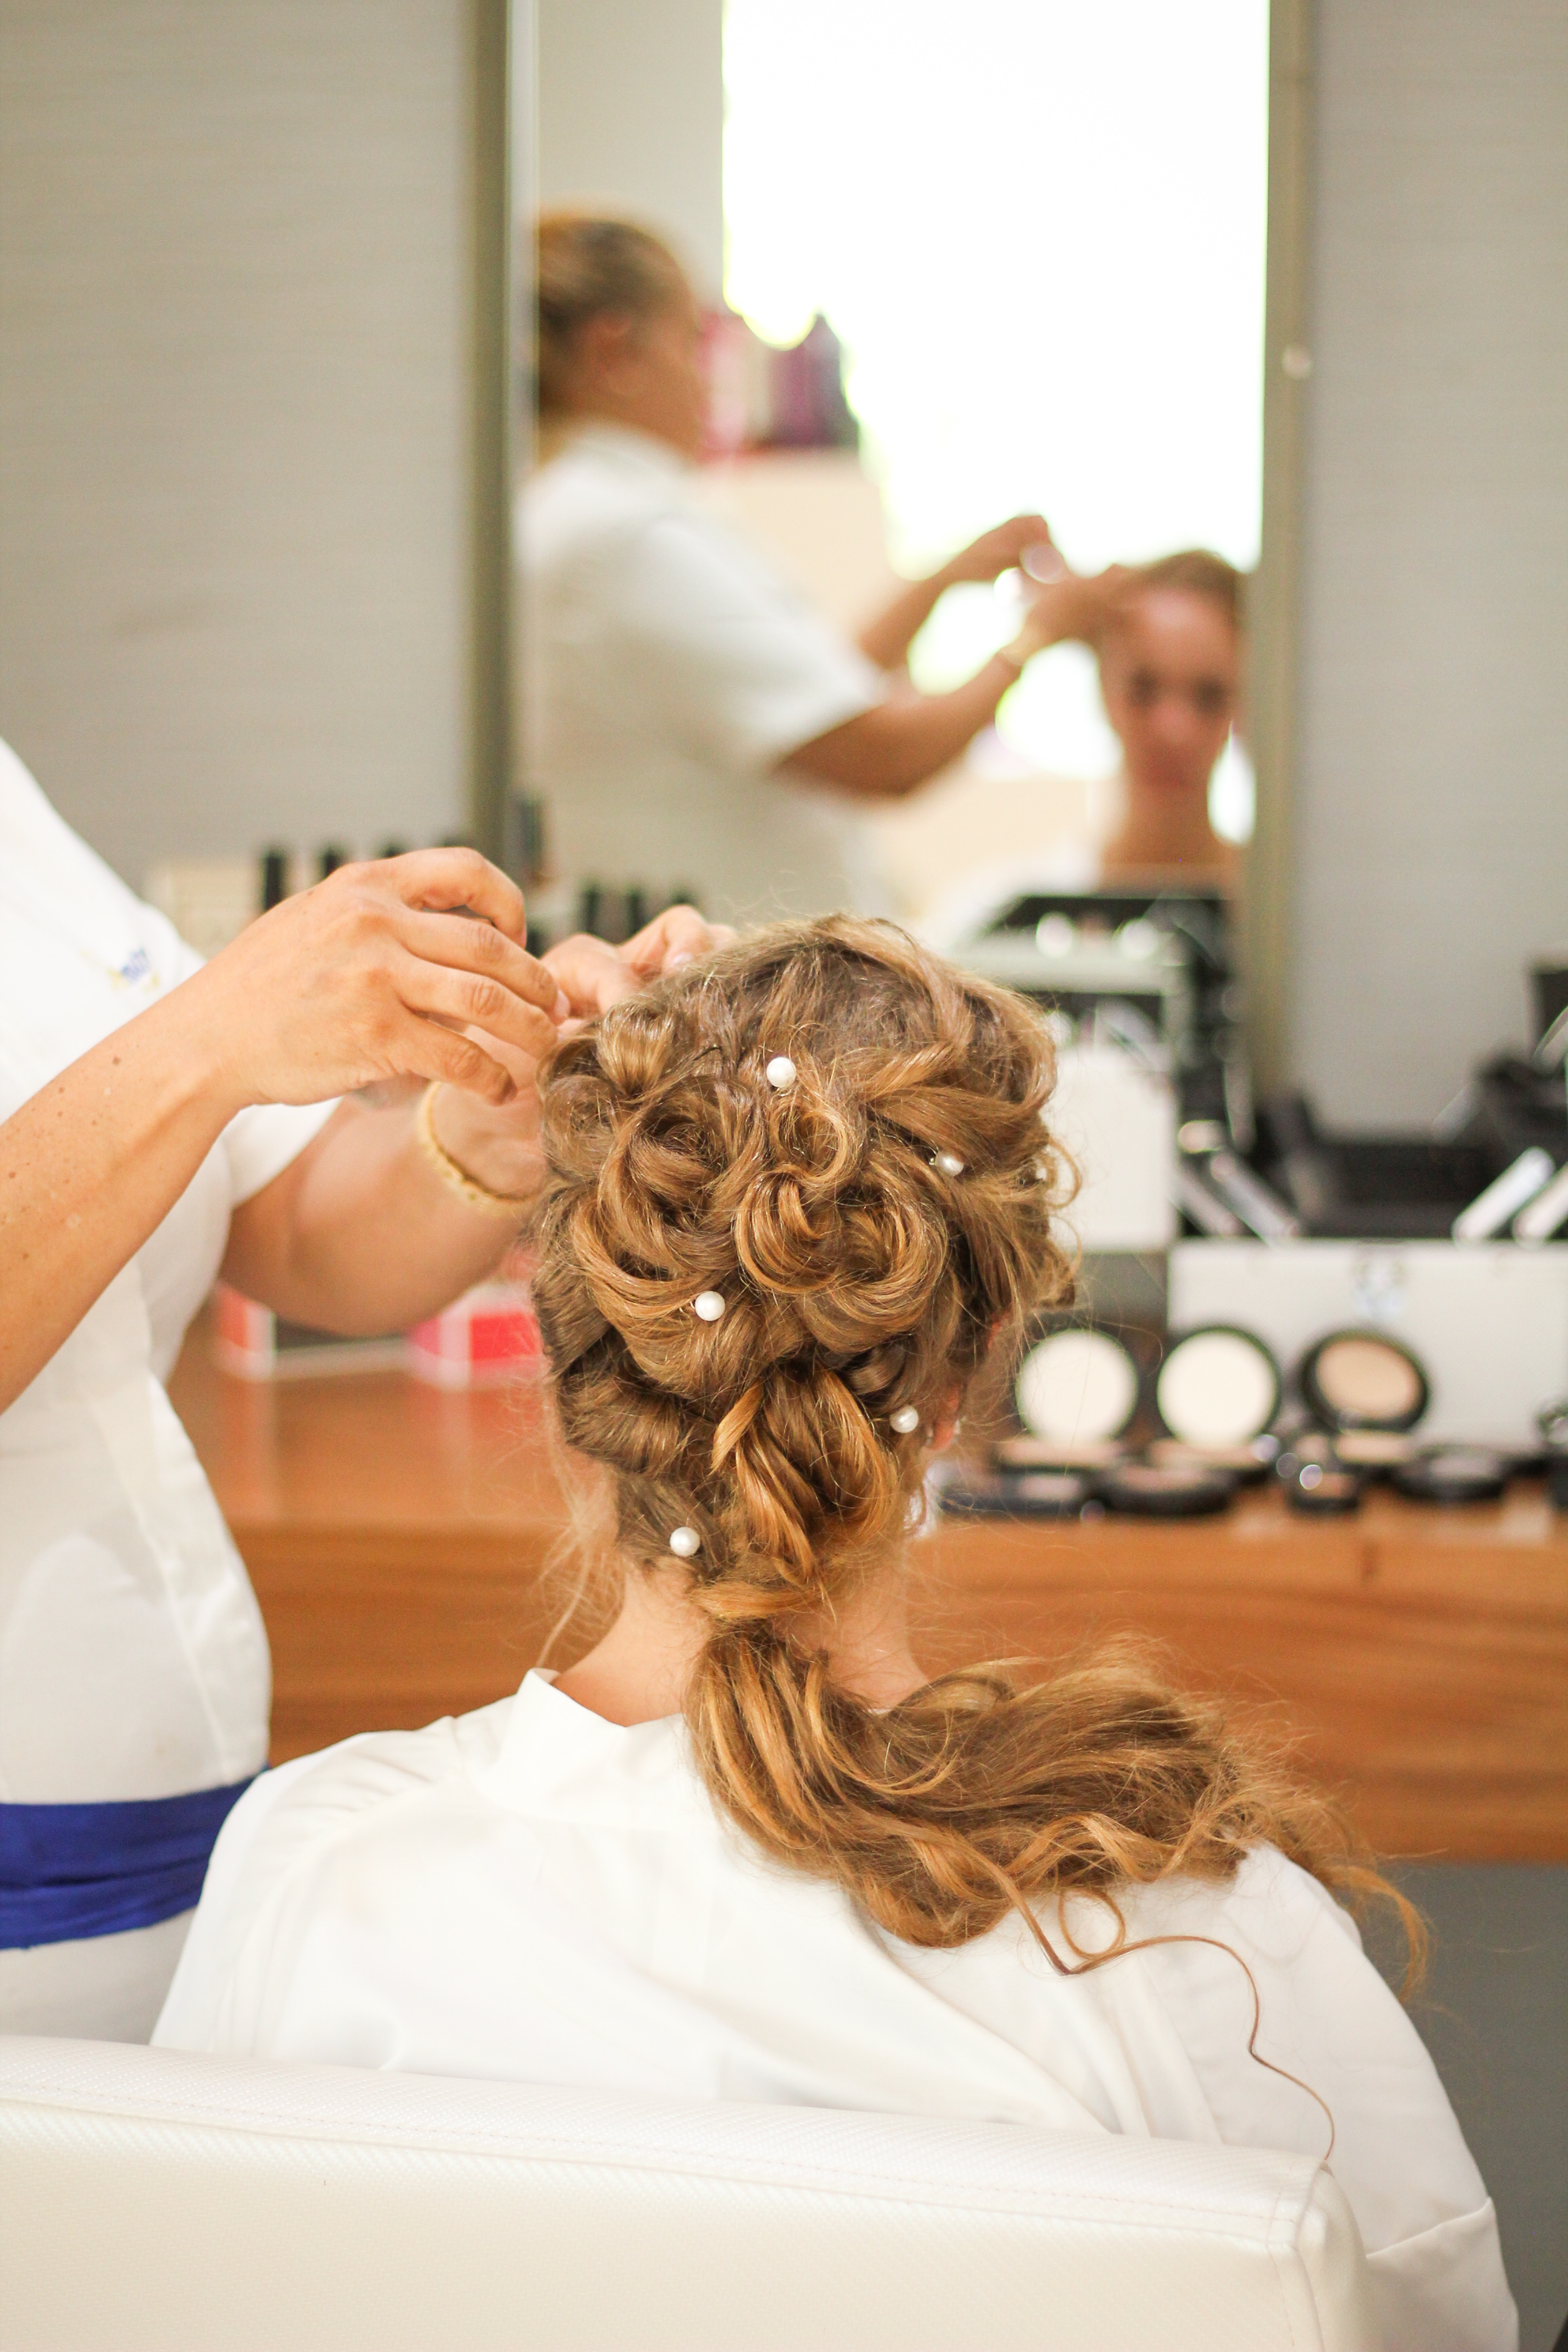 Levels 1 and 2 VTCT Diploma in Hairdressing (VRQ)